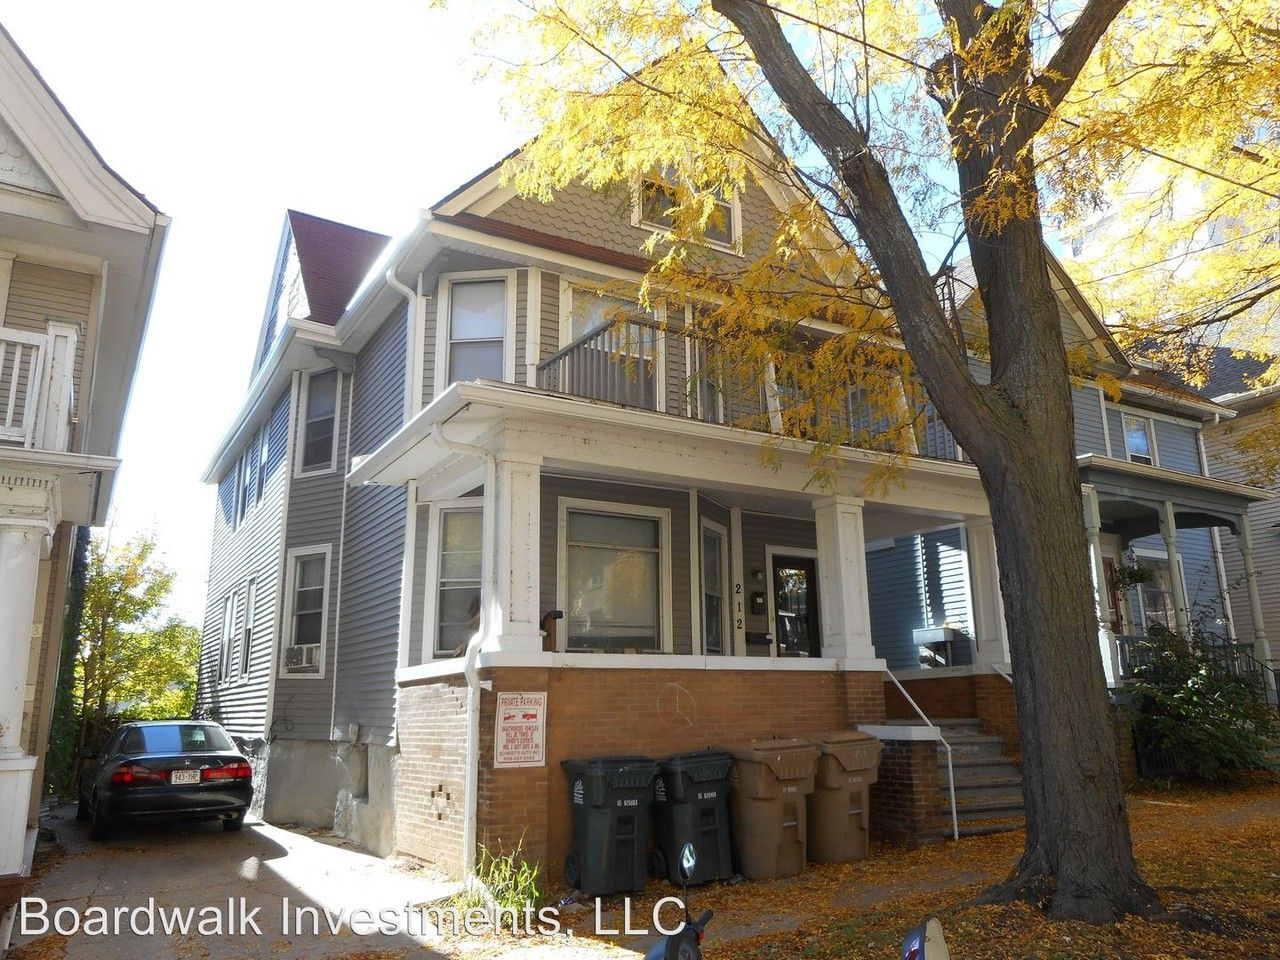 212 S. Henry St. Apartments for Rent in Downtown Madison ...